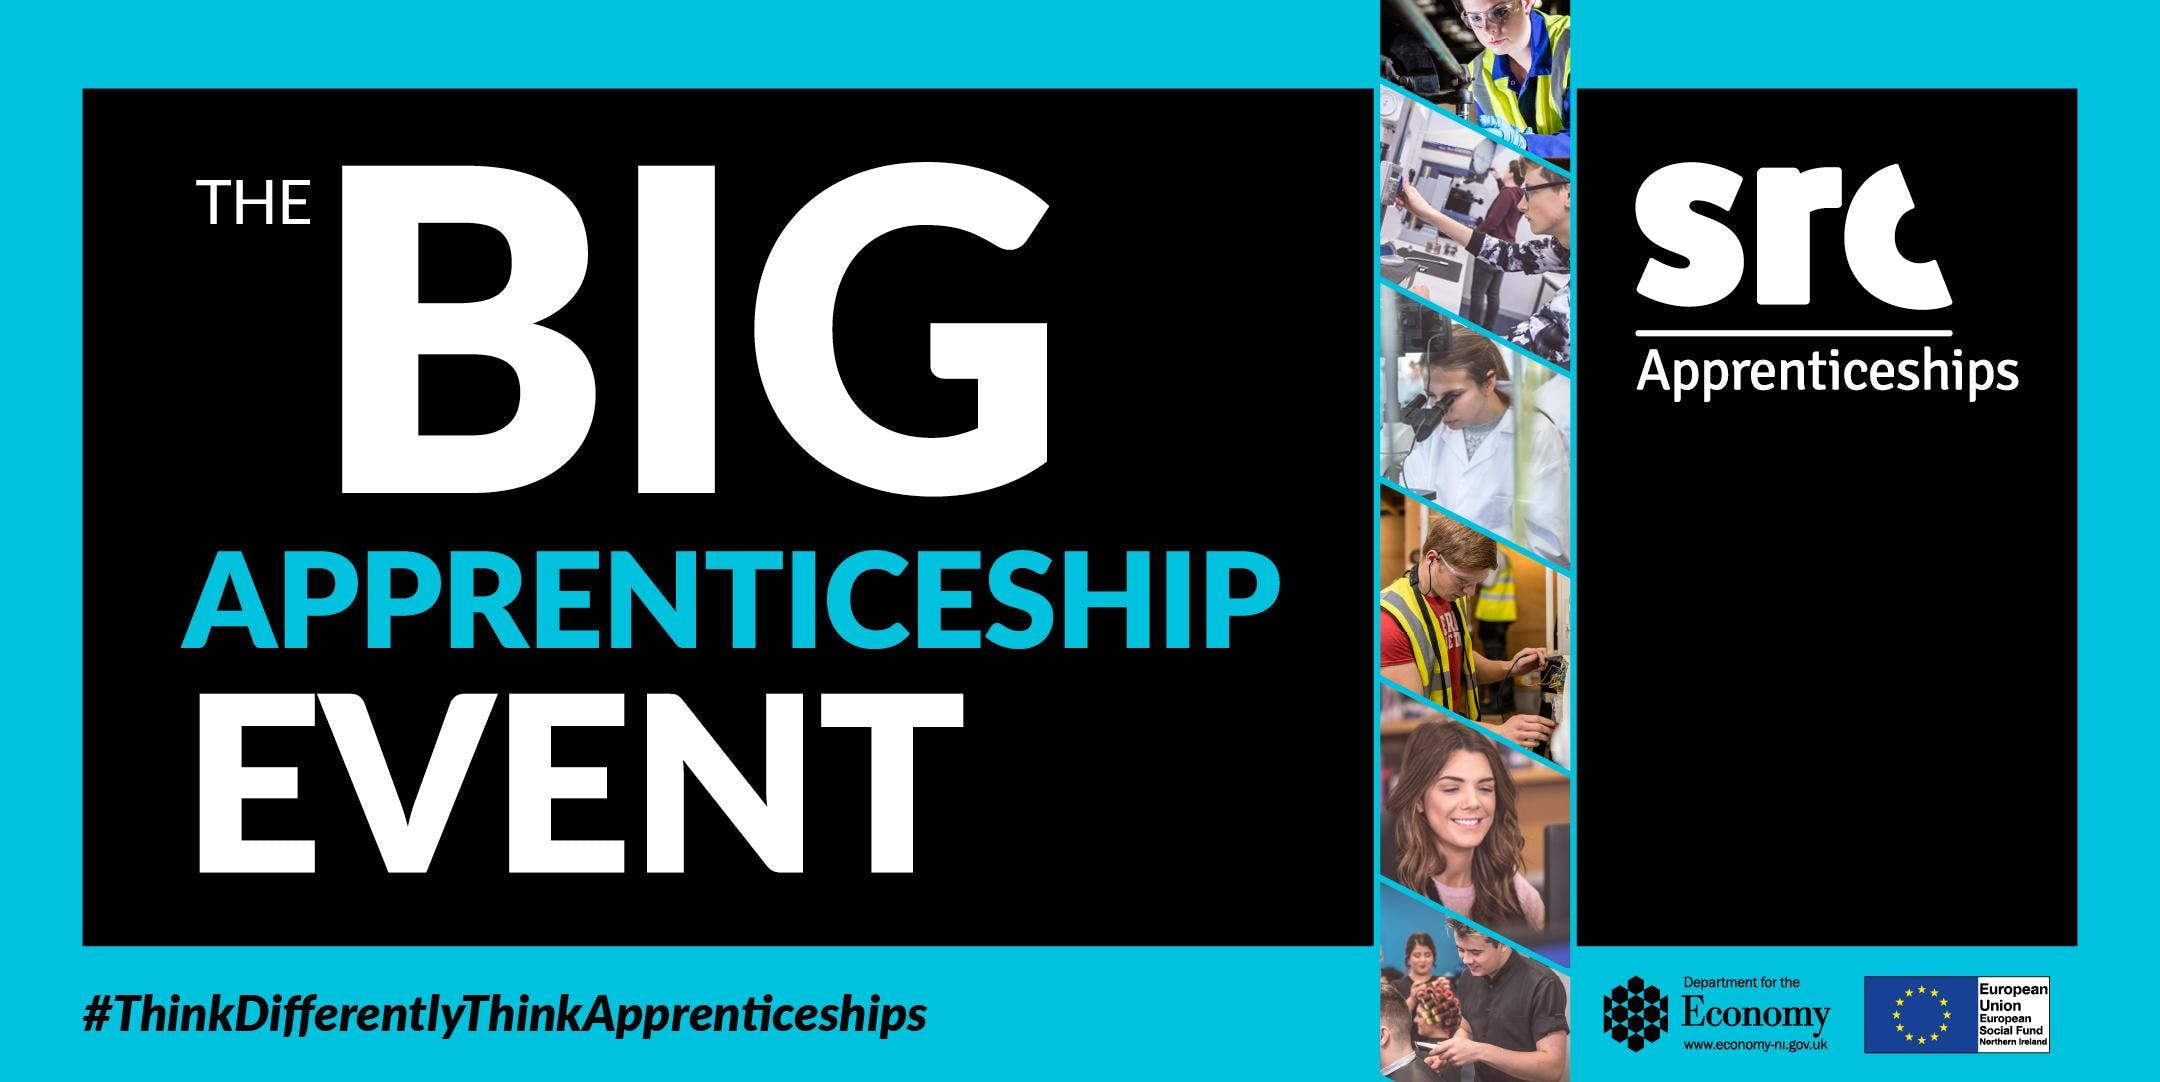 The Big Apprenticeship Event Newry - 21 March